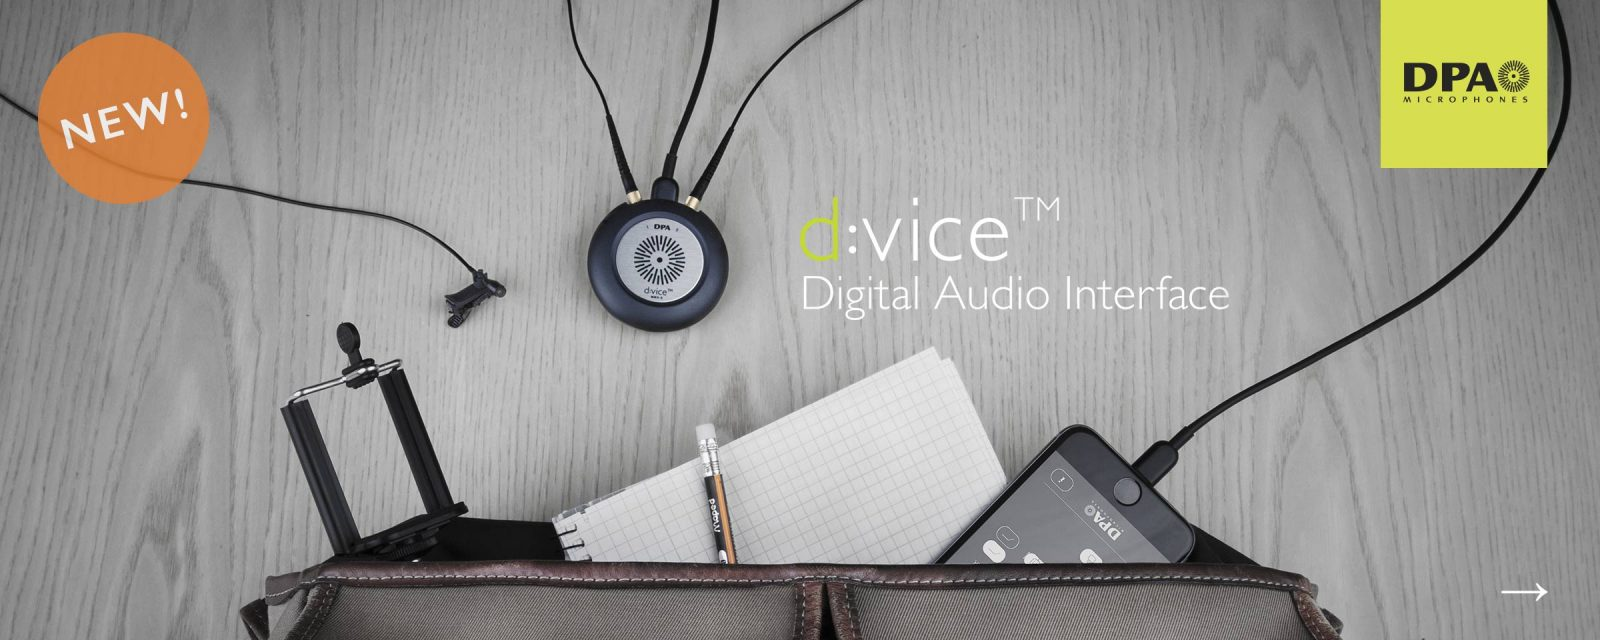 DPA d:vice™ Digital Audio Interface